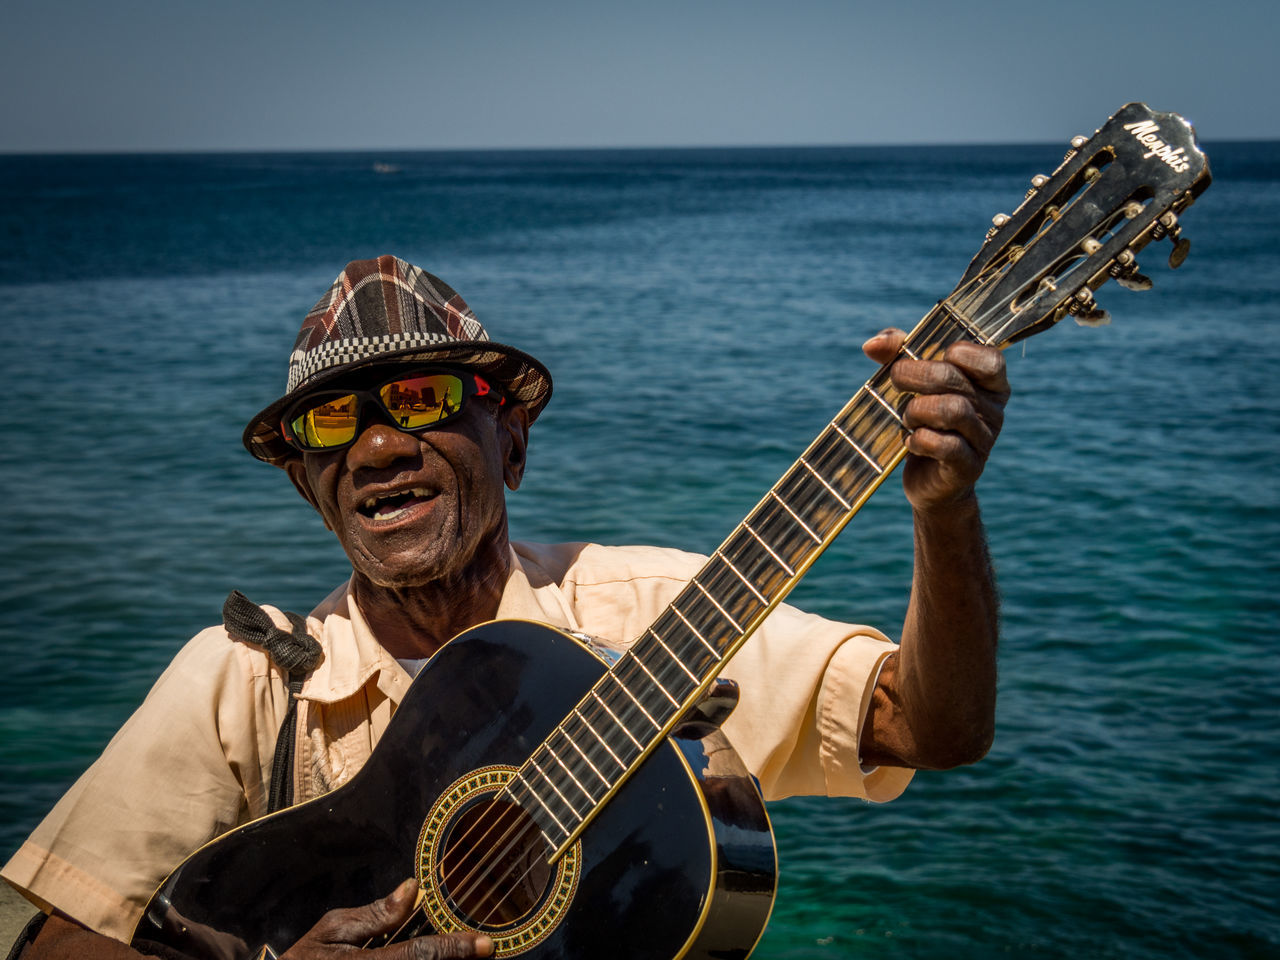 guitar, music, musical instrument, sea, guitarist, playing, acoustic guitar, musician, water, plucking an instrument, arts culture and entertainment, outdoors, real people, one person, performance, horizon over water, nature, fretboard, day, people